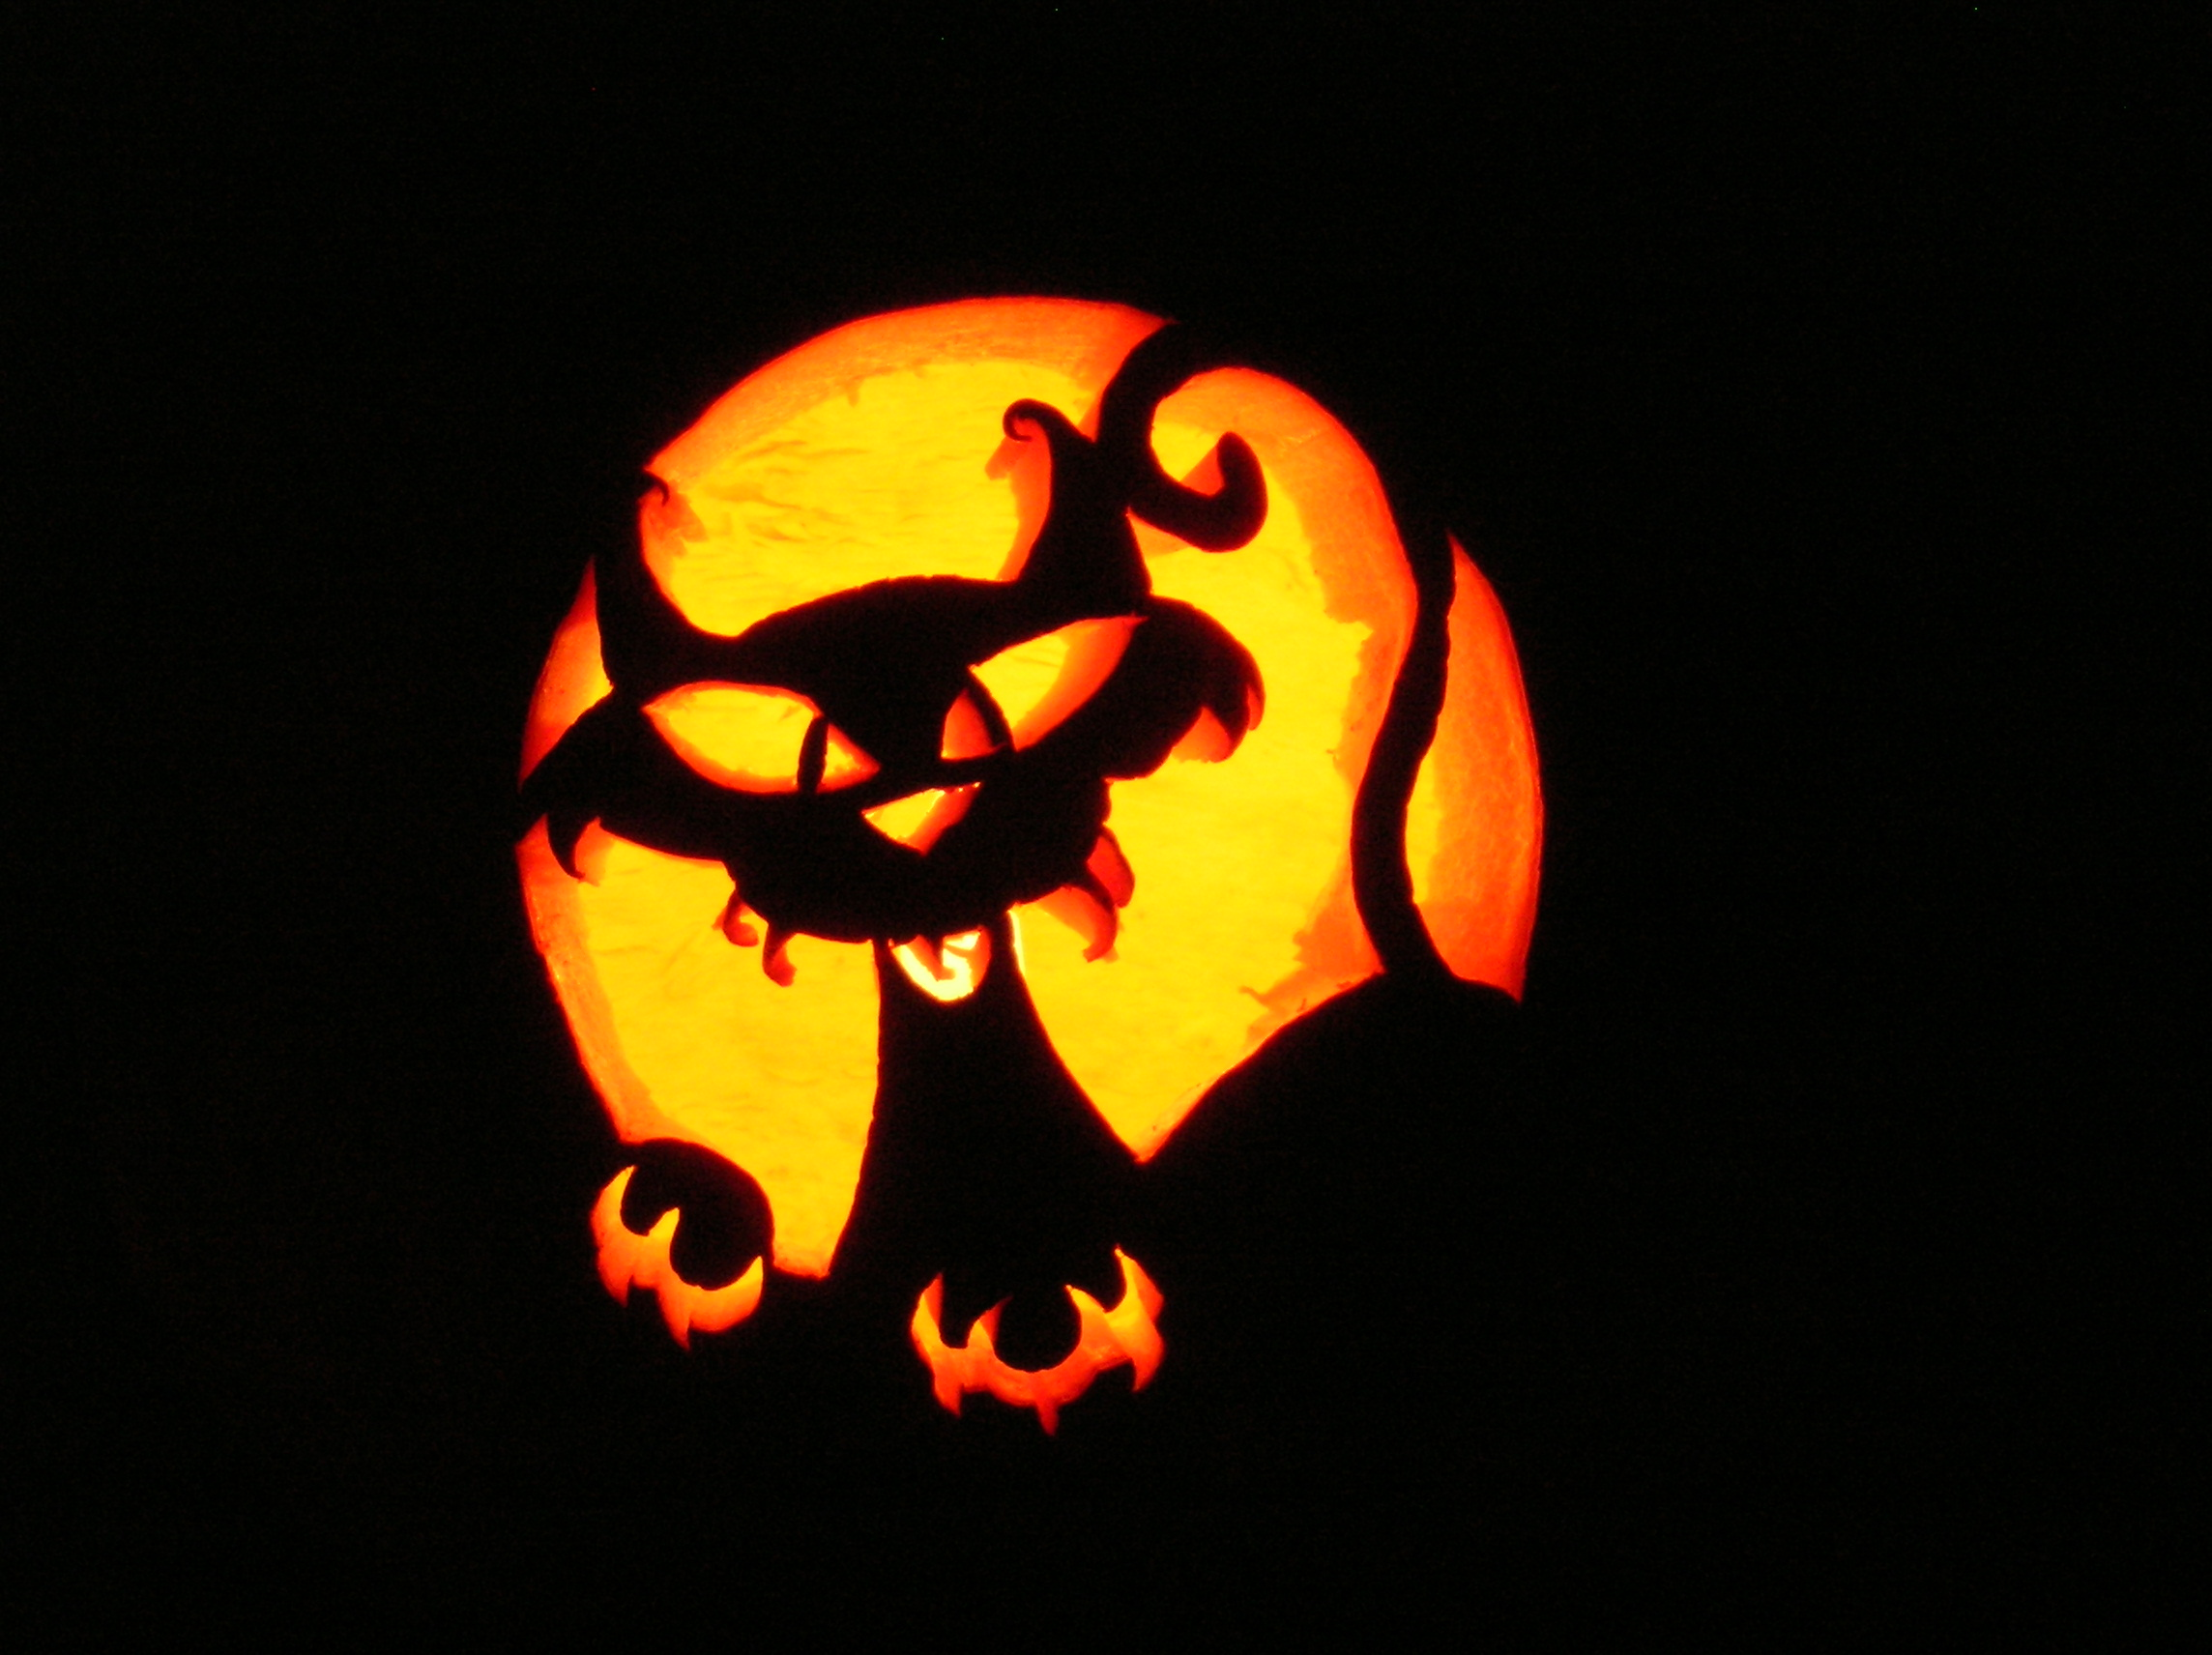 http://upload.wikimedia.org/wikipedia/commons/e/e8/Happy_Halloween_1!.jpg